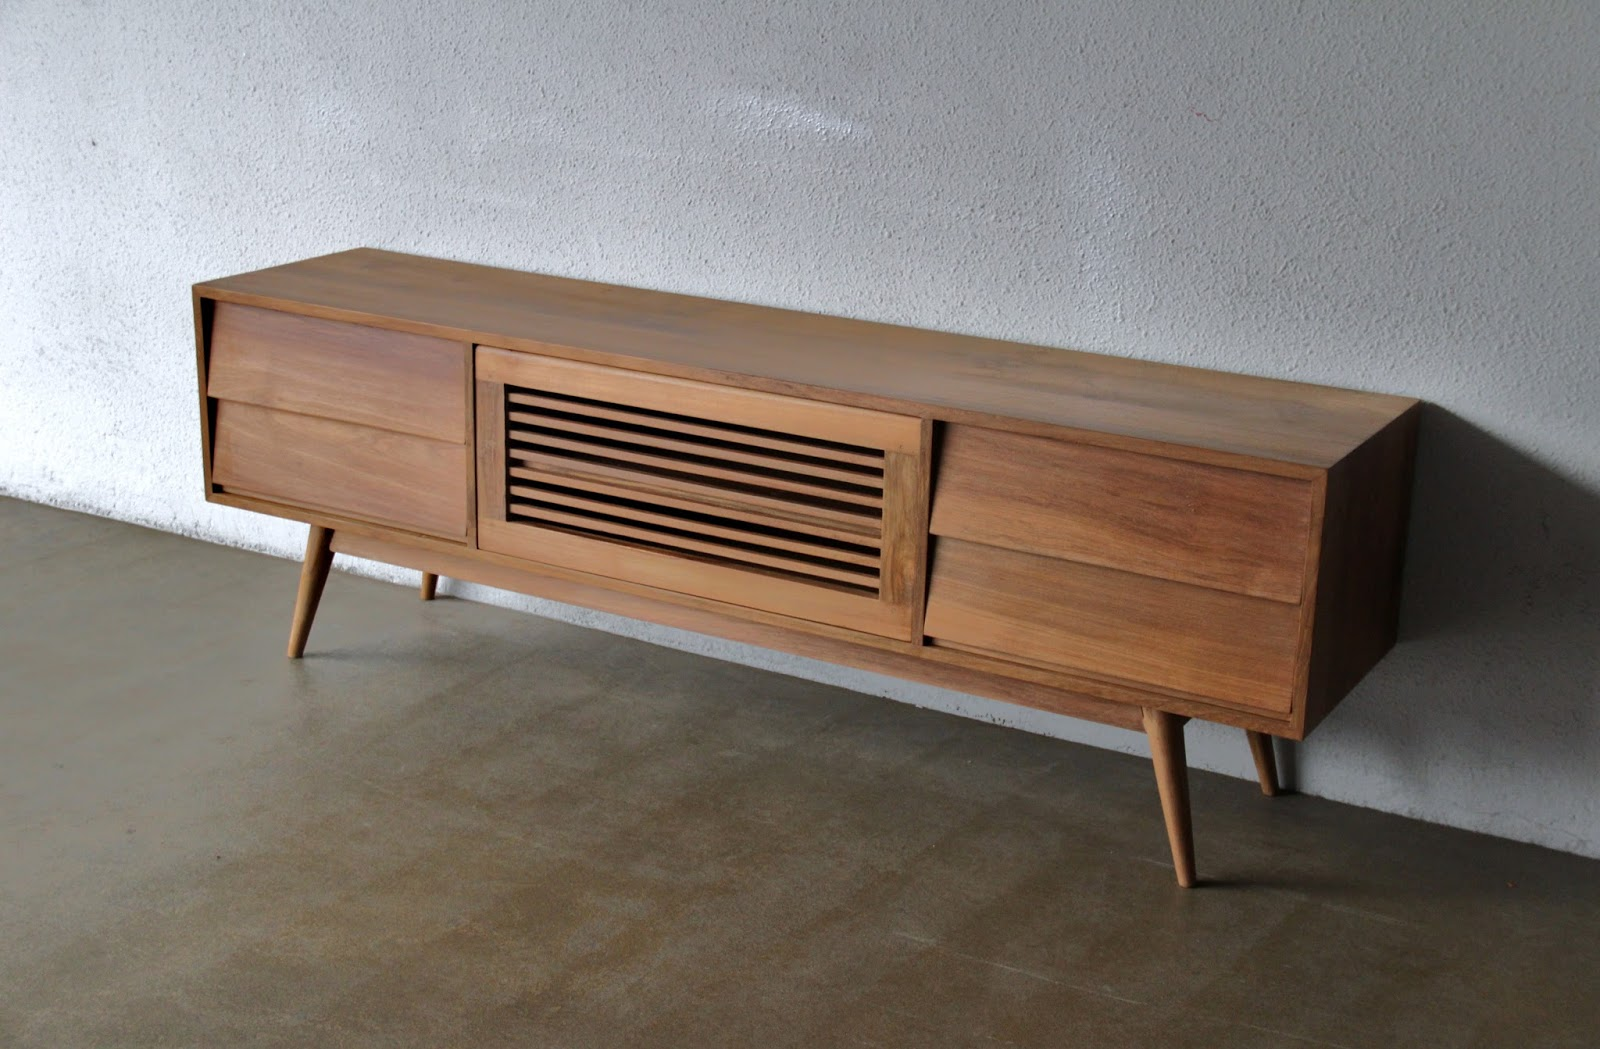 second charm furniture  customizing for big and small spaces  - another of our popular design long television console